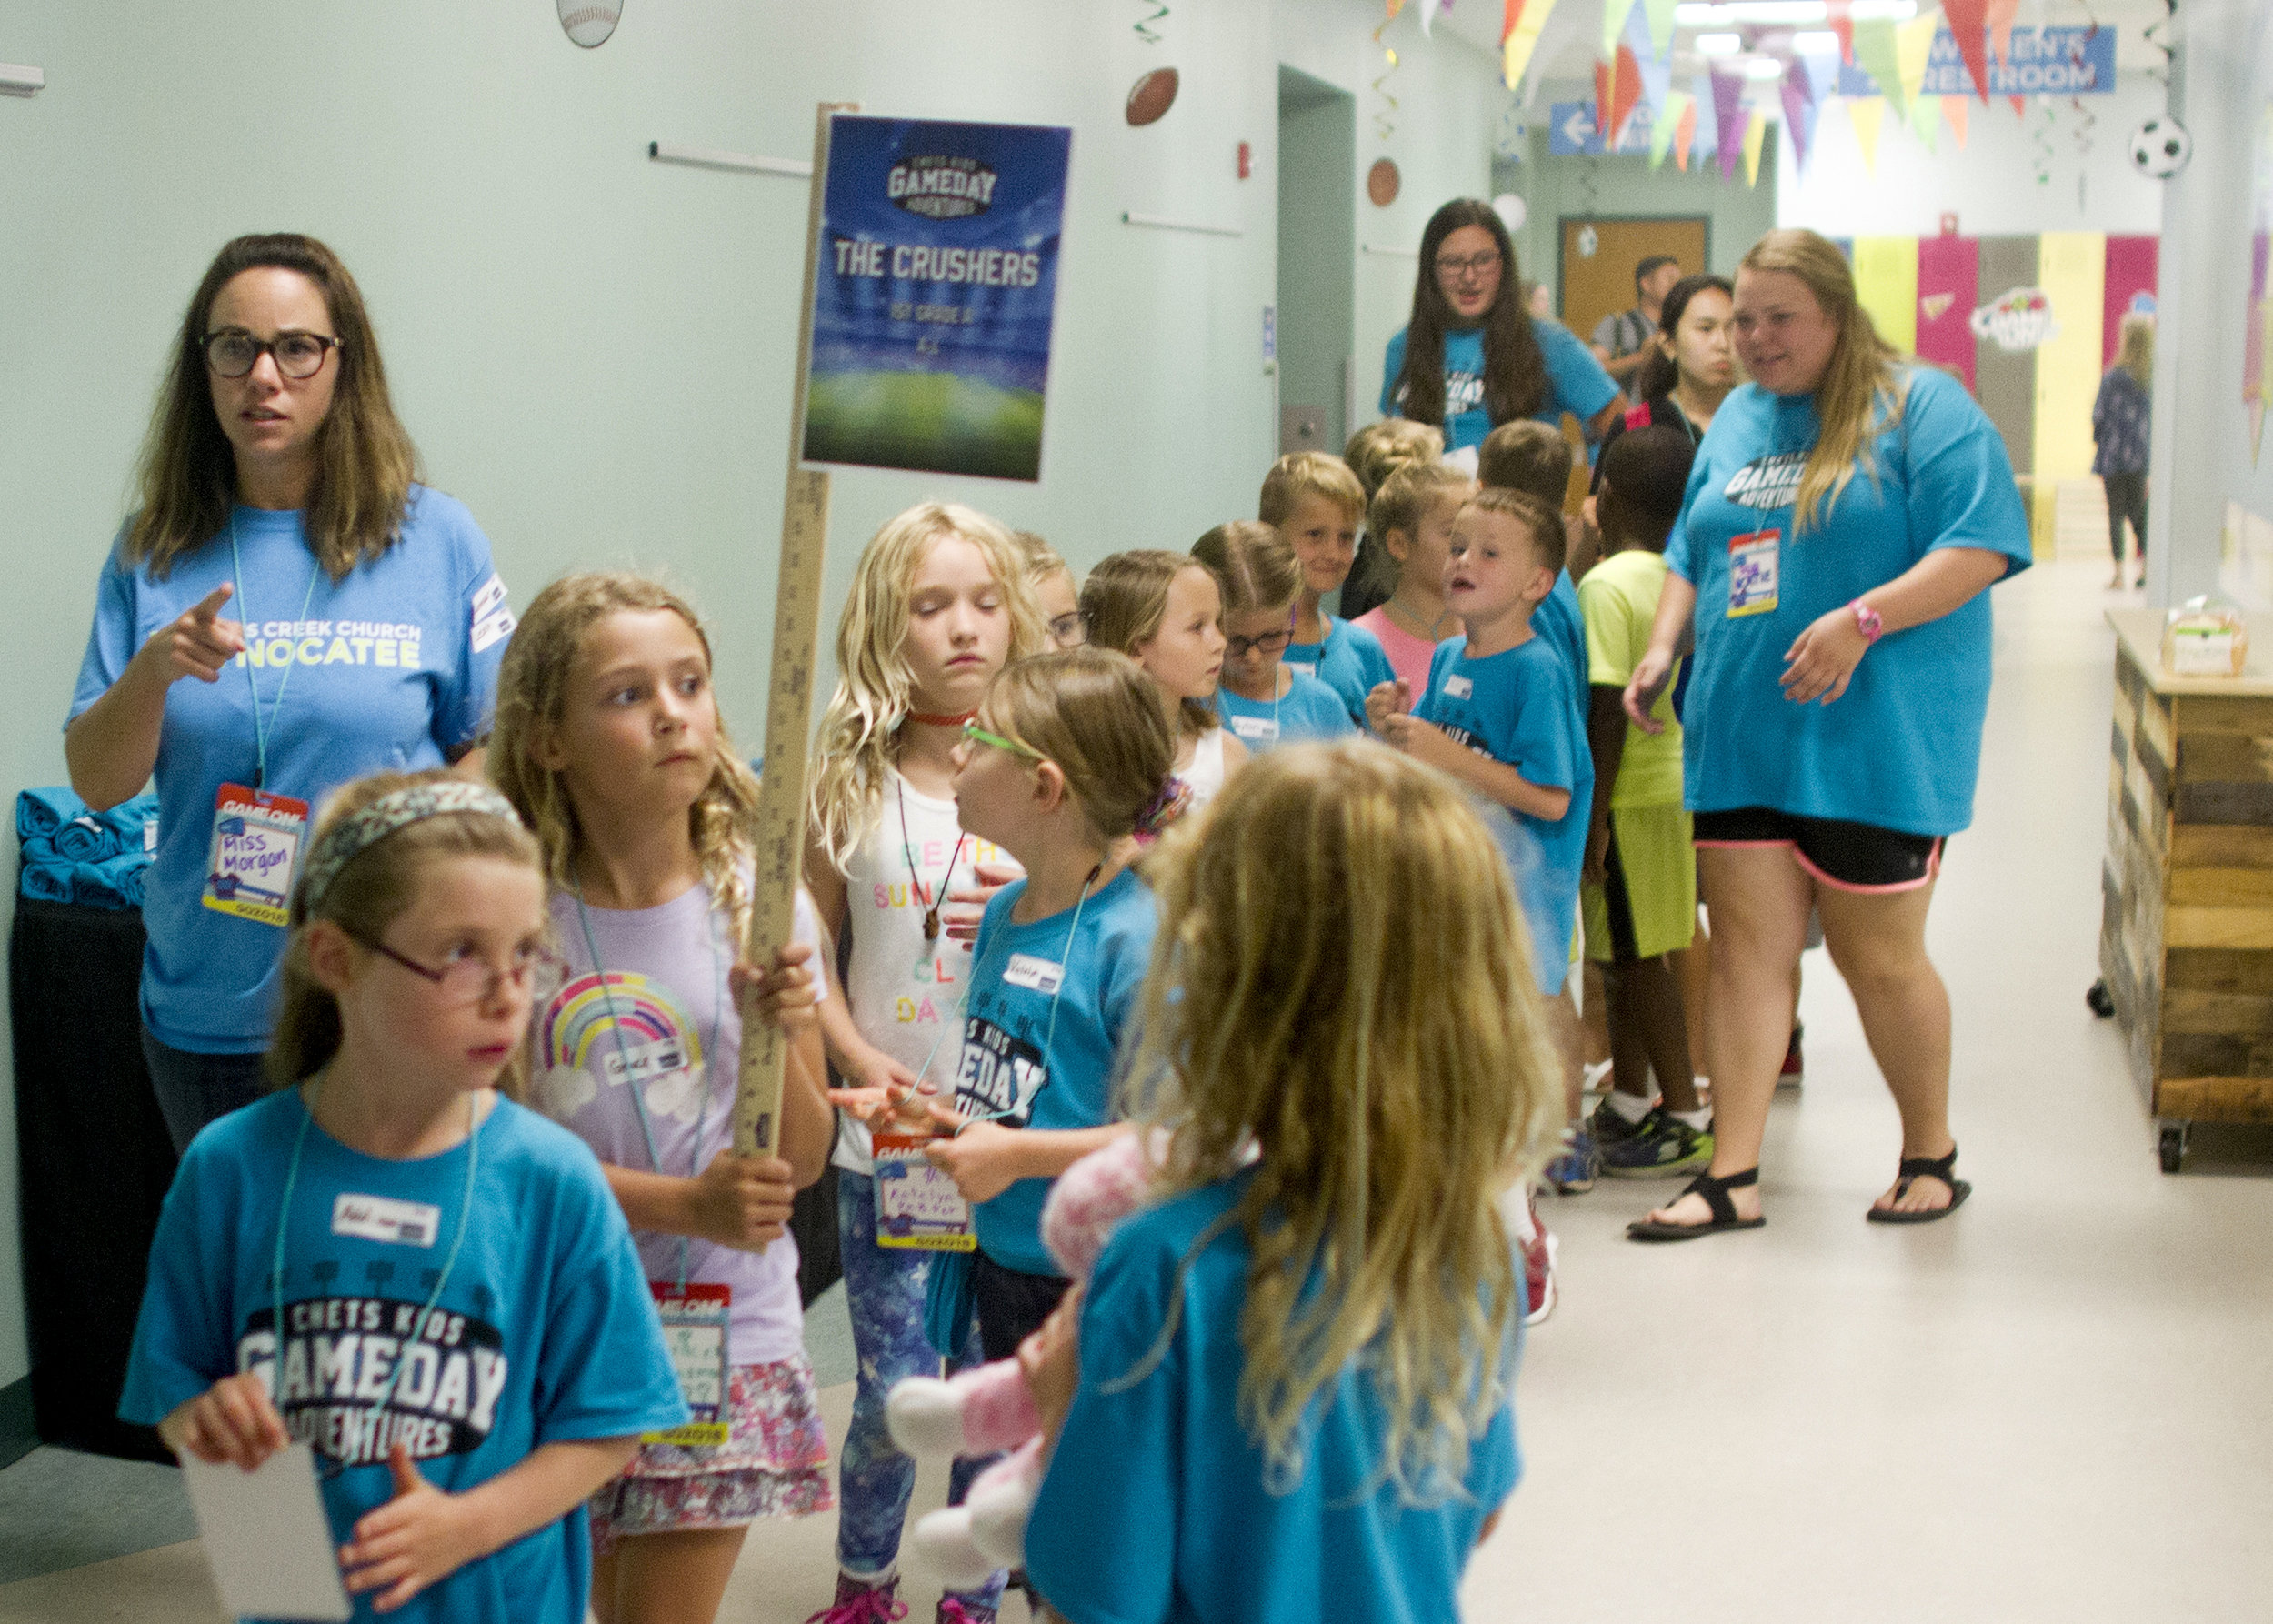 VBS- For The Community_1.jpg